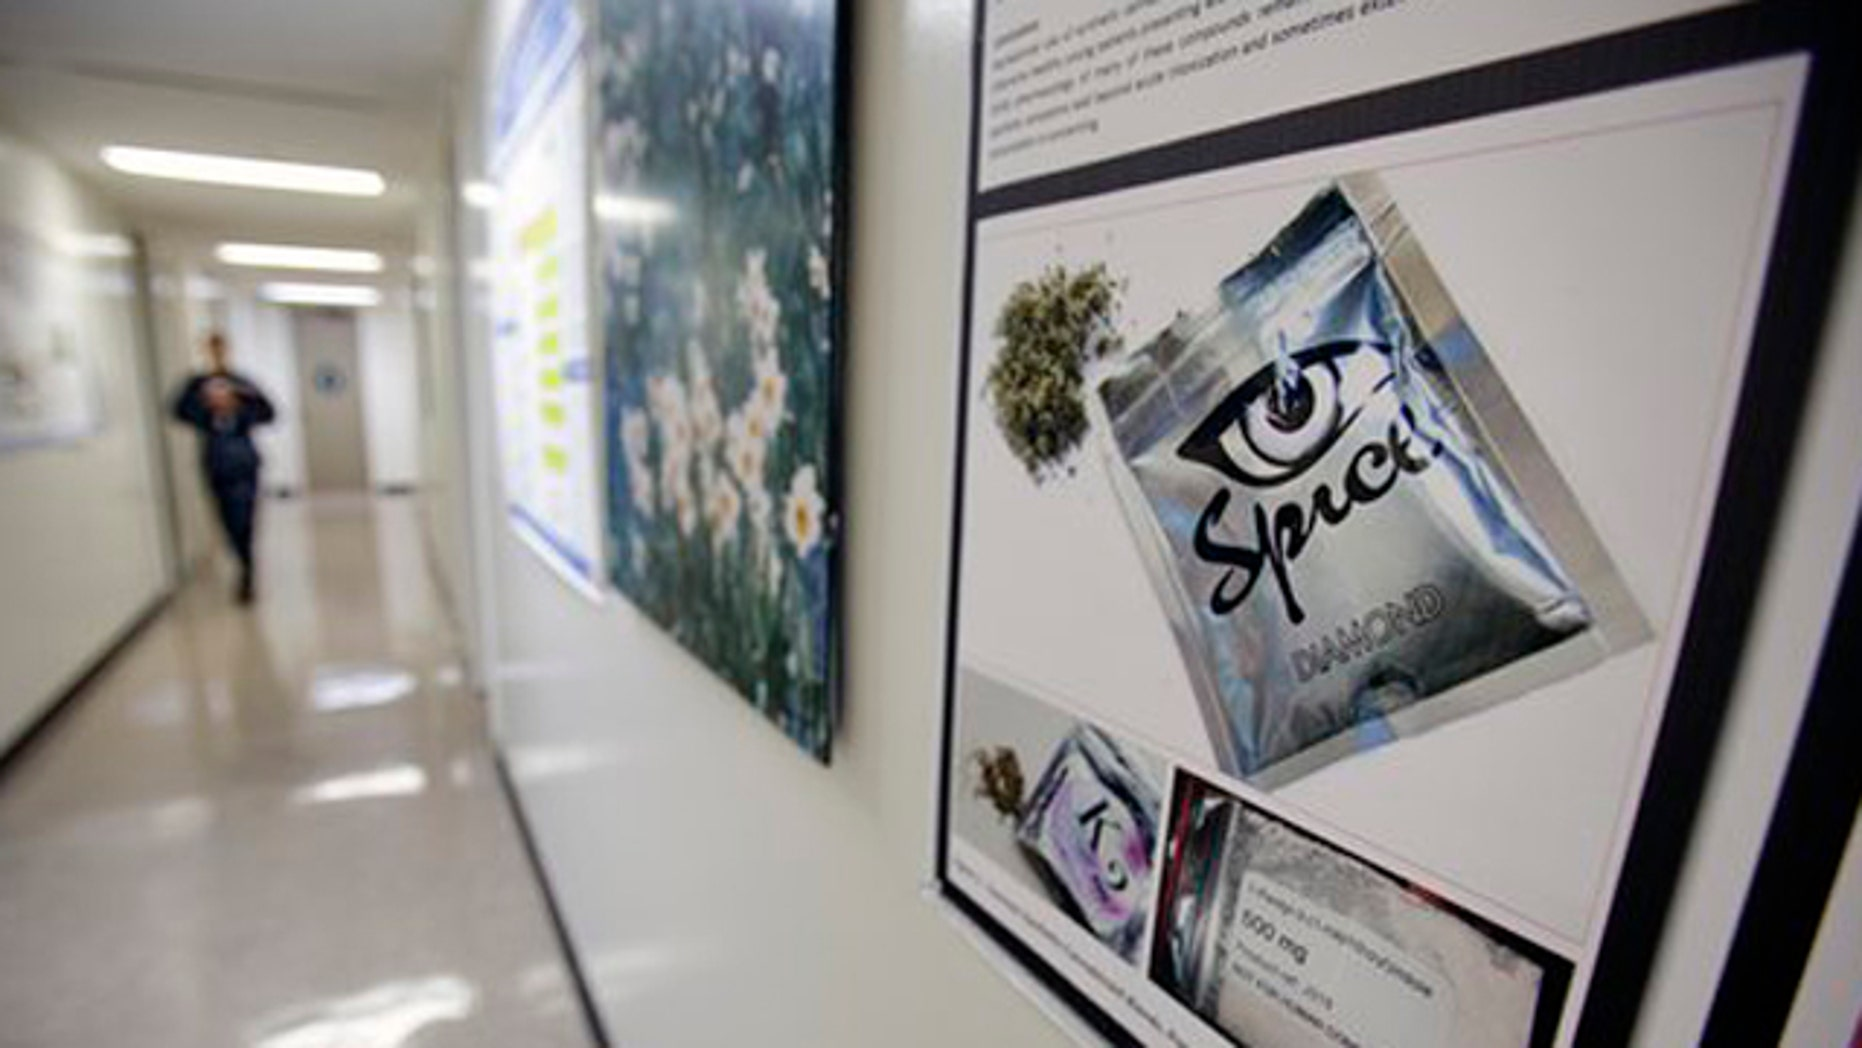 December 6, 2011: A poster warning of the effects of the drug known as 'spice' hangs on a wall at the Naval Hospital, in San Diego.